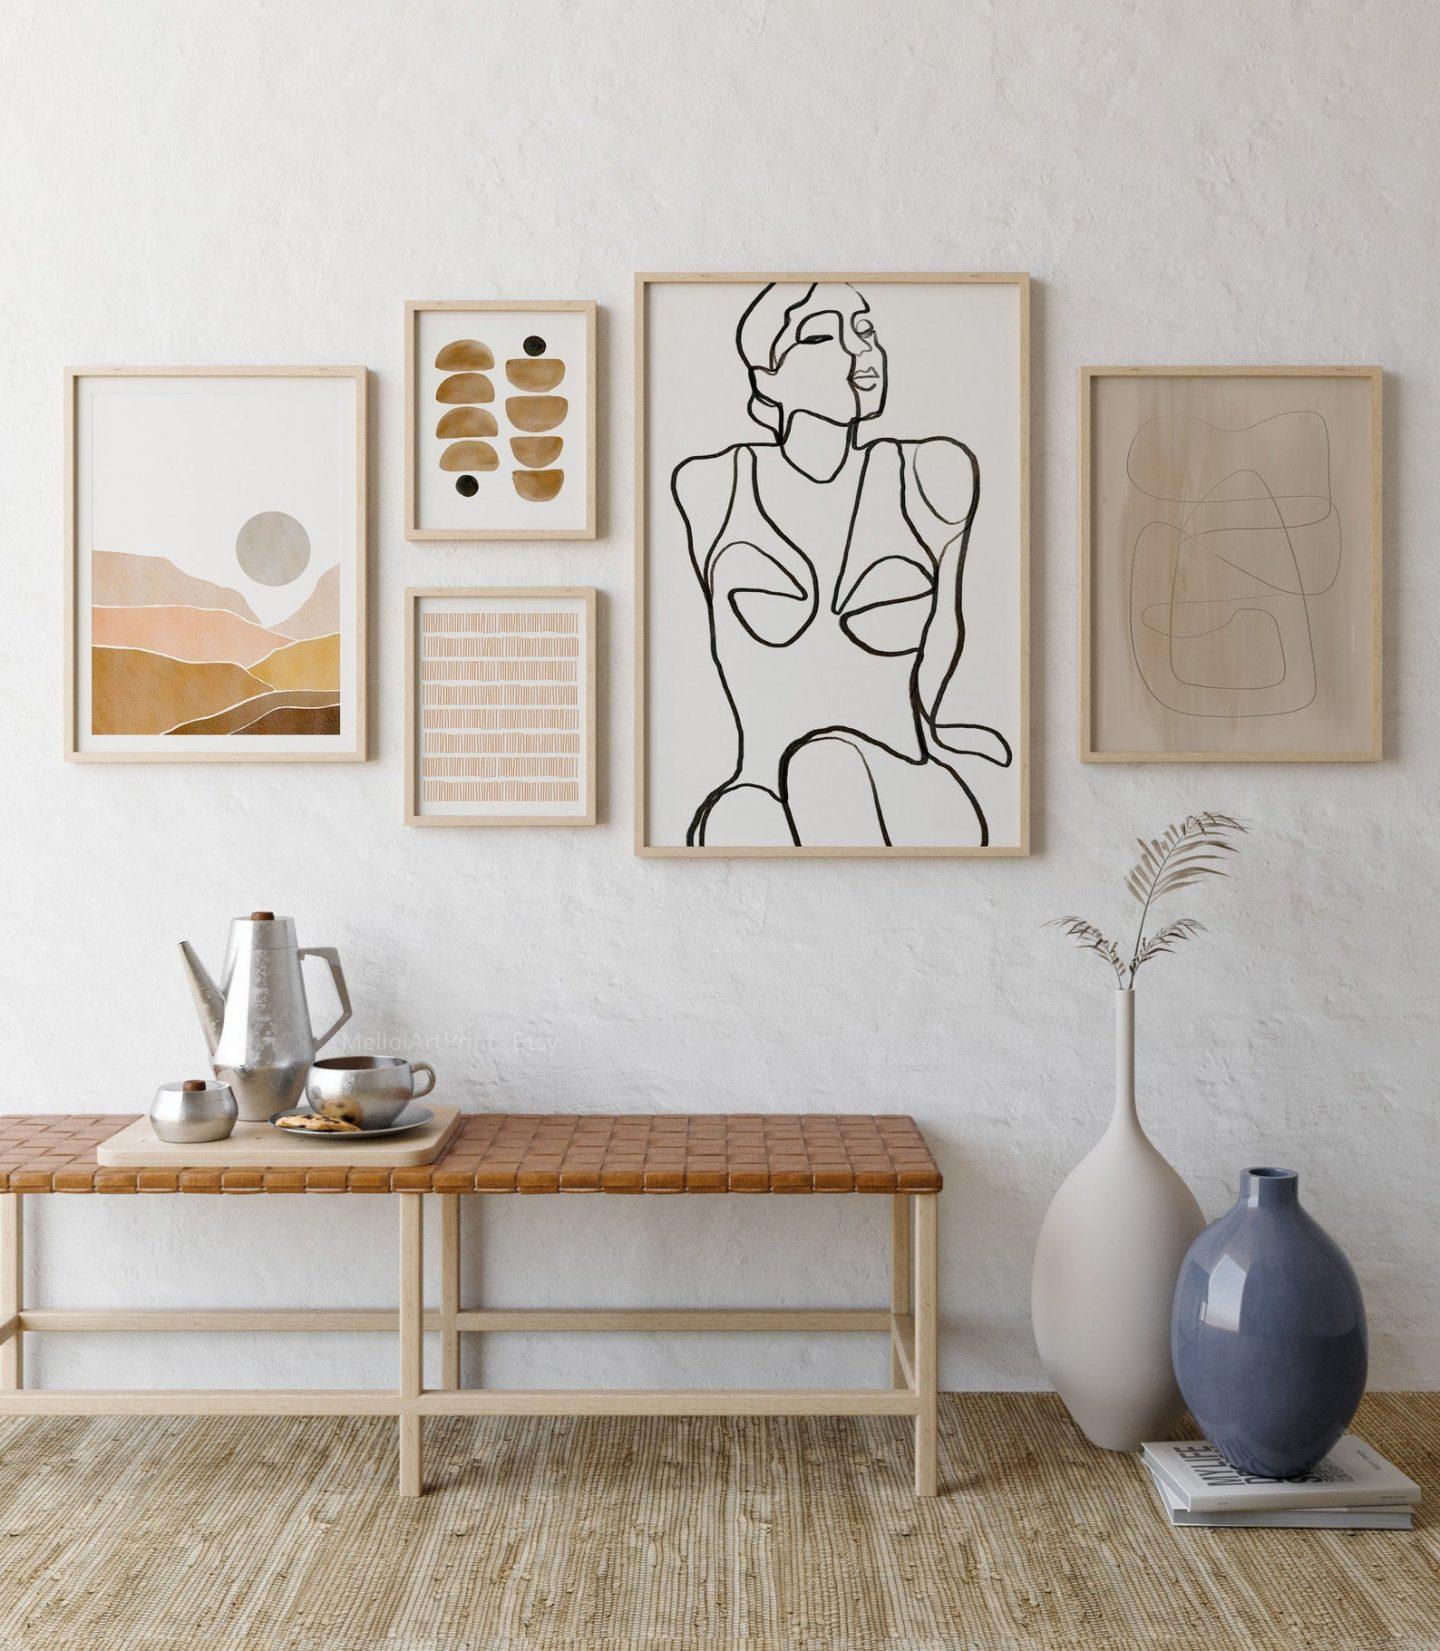 Nude and brown abstract wall decor with female figure